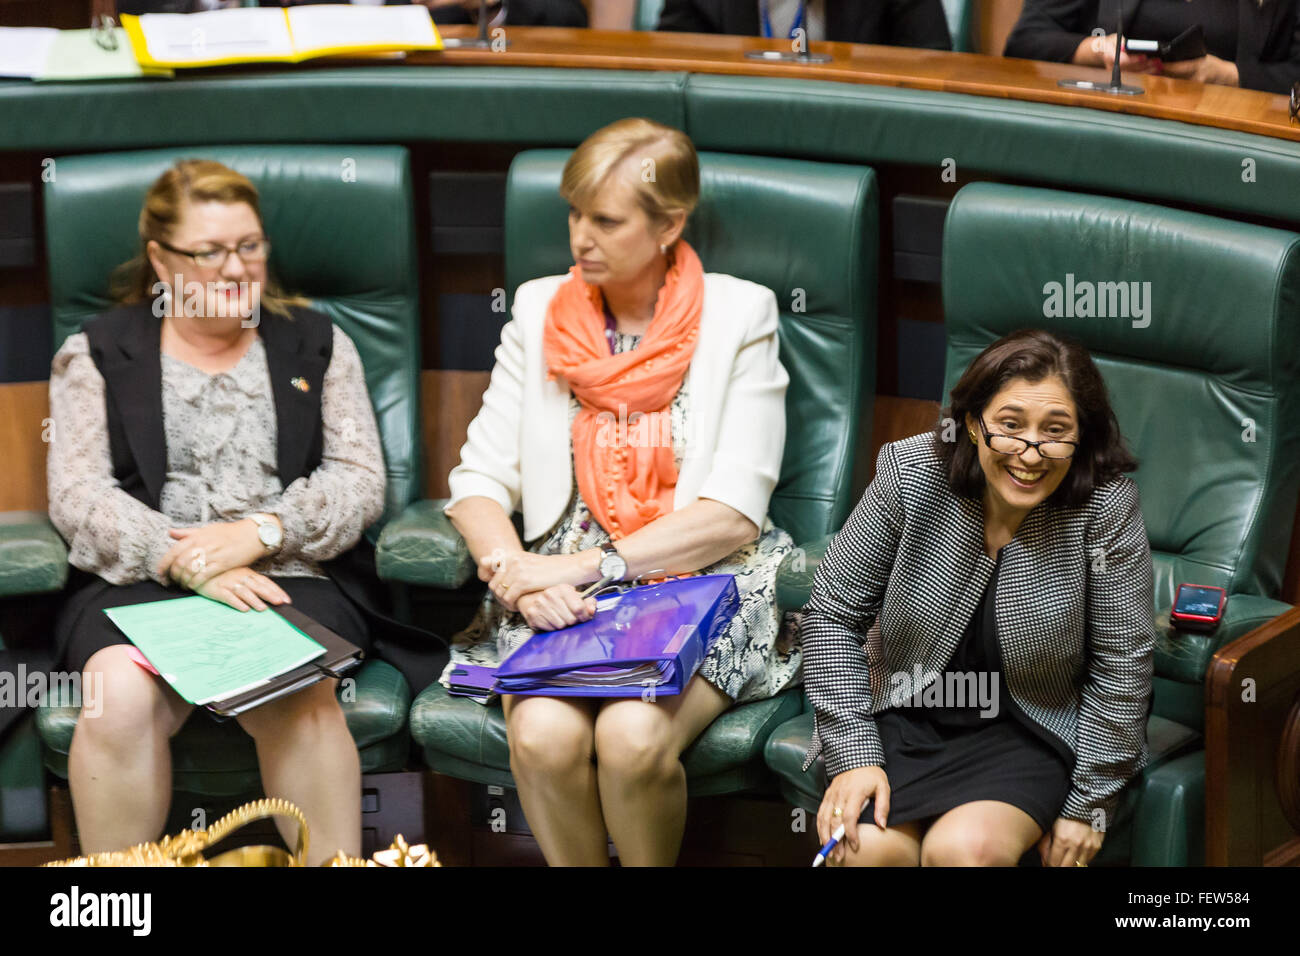 Melbourne, Australia. 9th February, 2016. The Minister for Industry, Energy & Resources reacts to a question - Stock Image